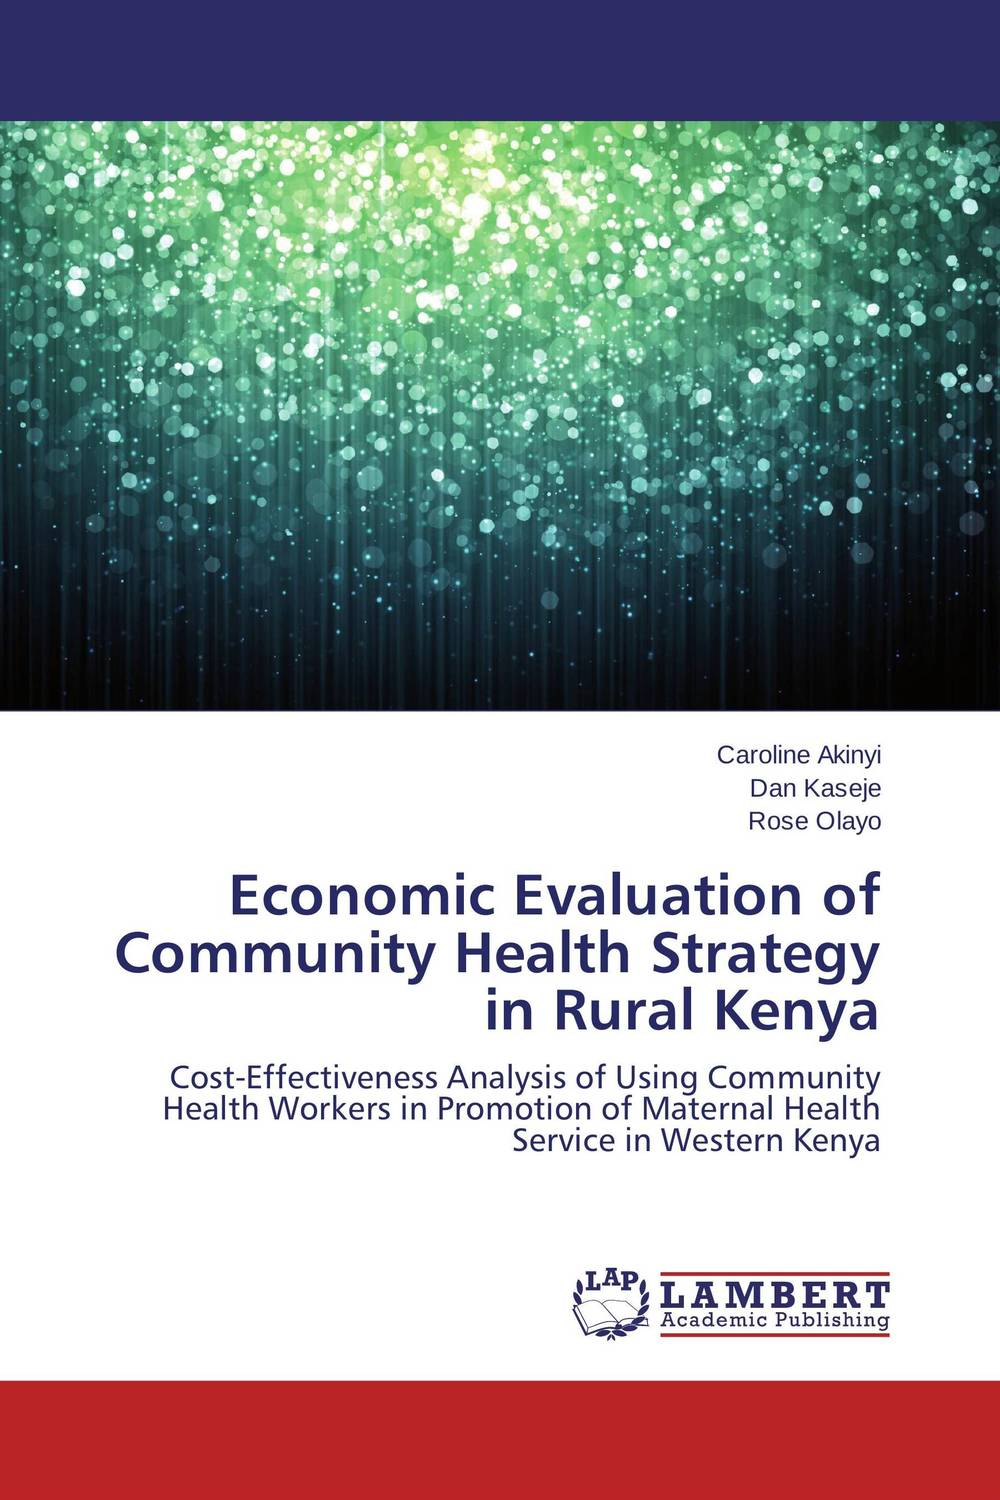 Economic Evaluation of Community Health Strategy in Rural Kenya cost of maternal healthcare service utlised by nhis clients in ghana